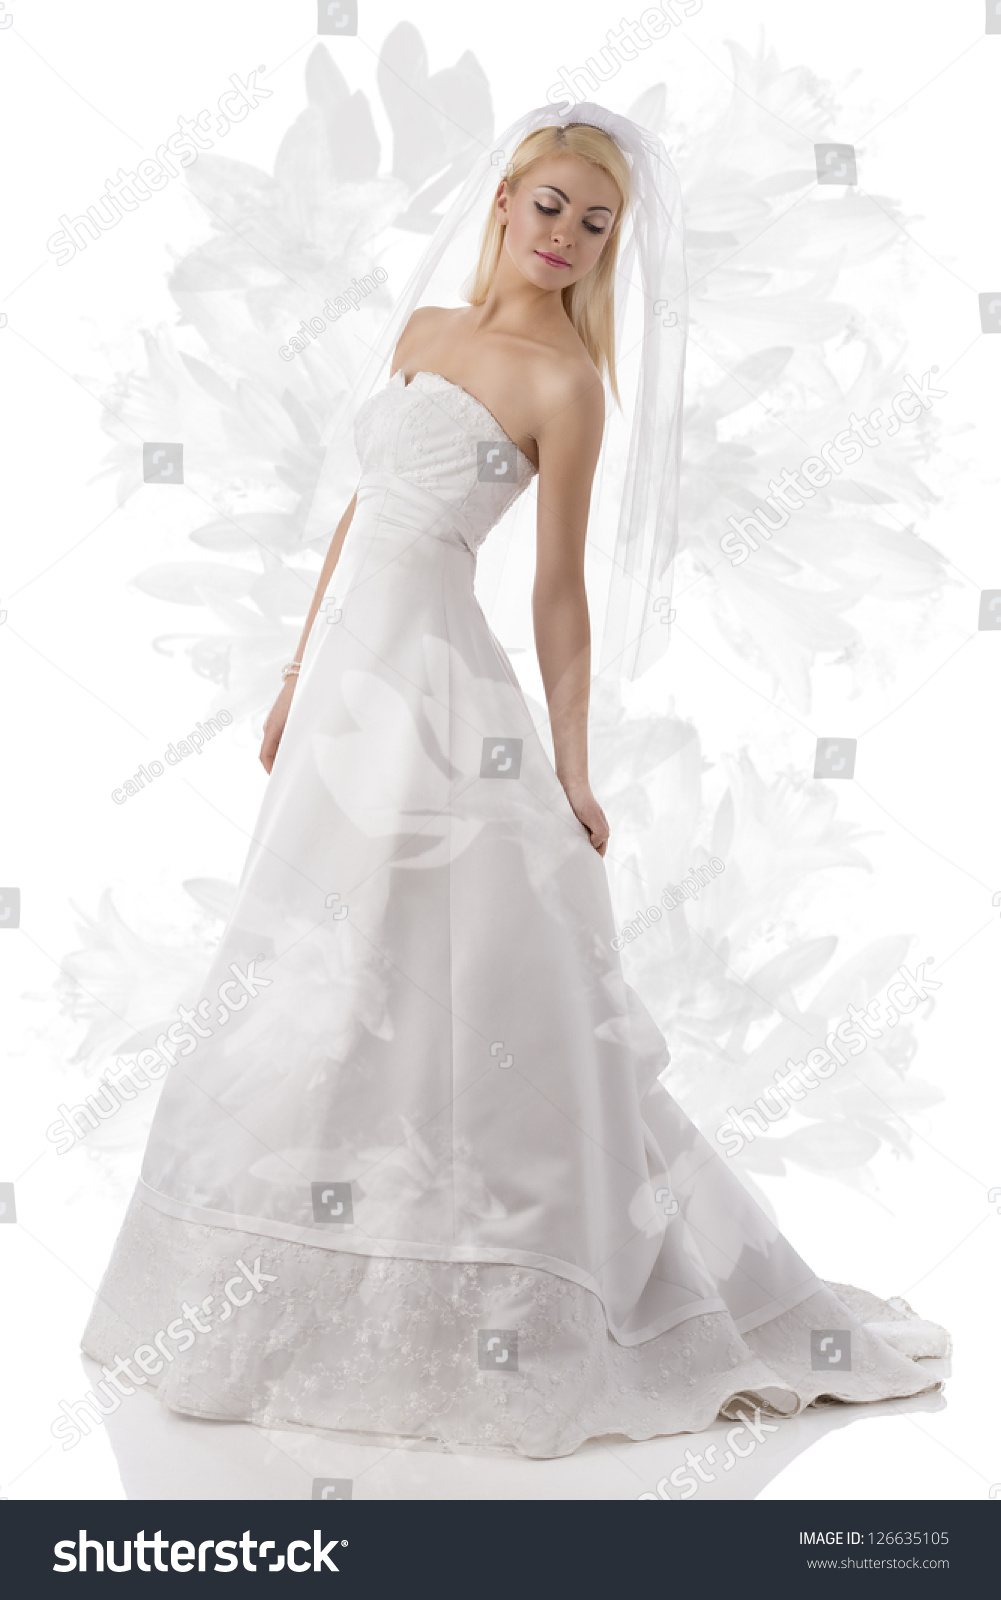 Cute blonde woman with long wedding dress white veil and for Bracelet for wedding dress